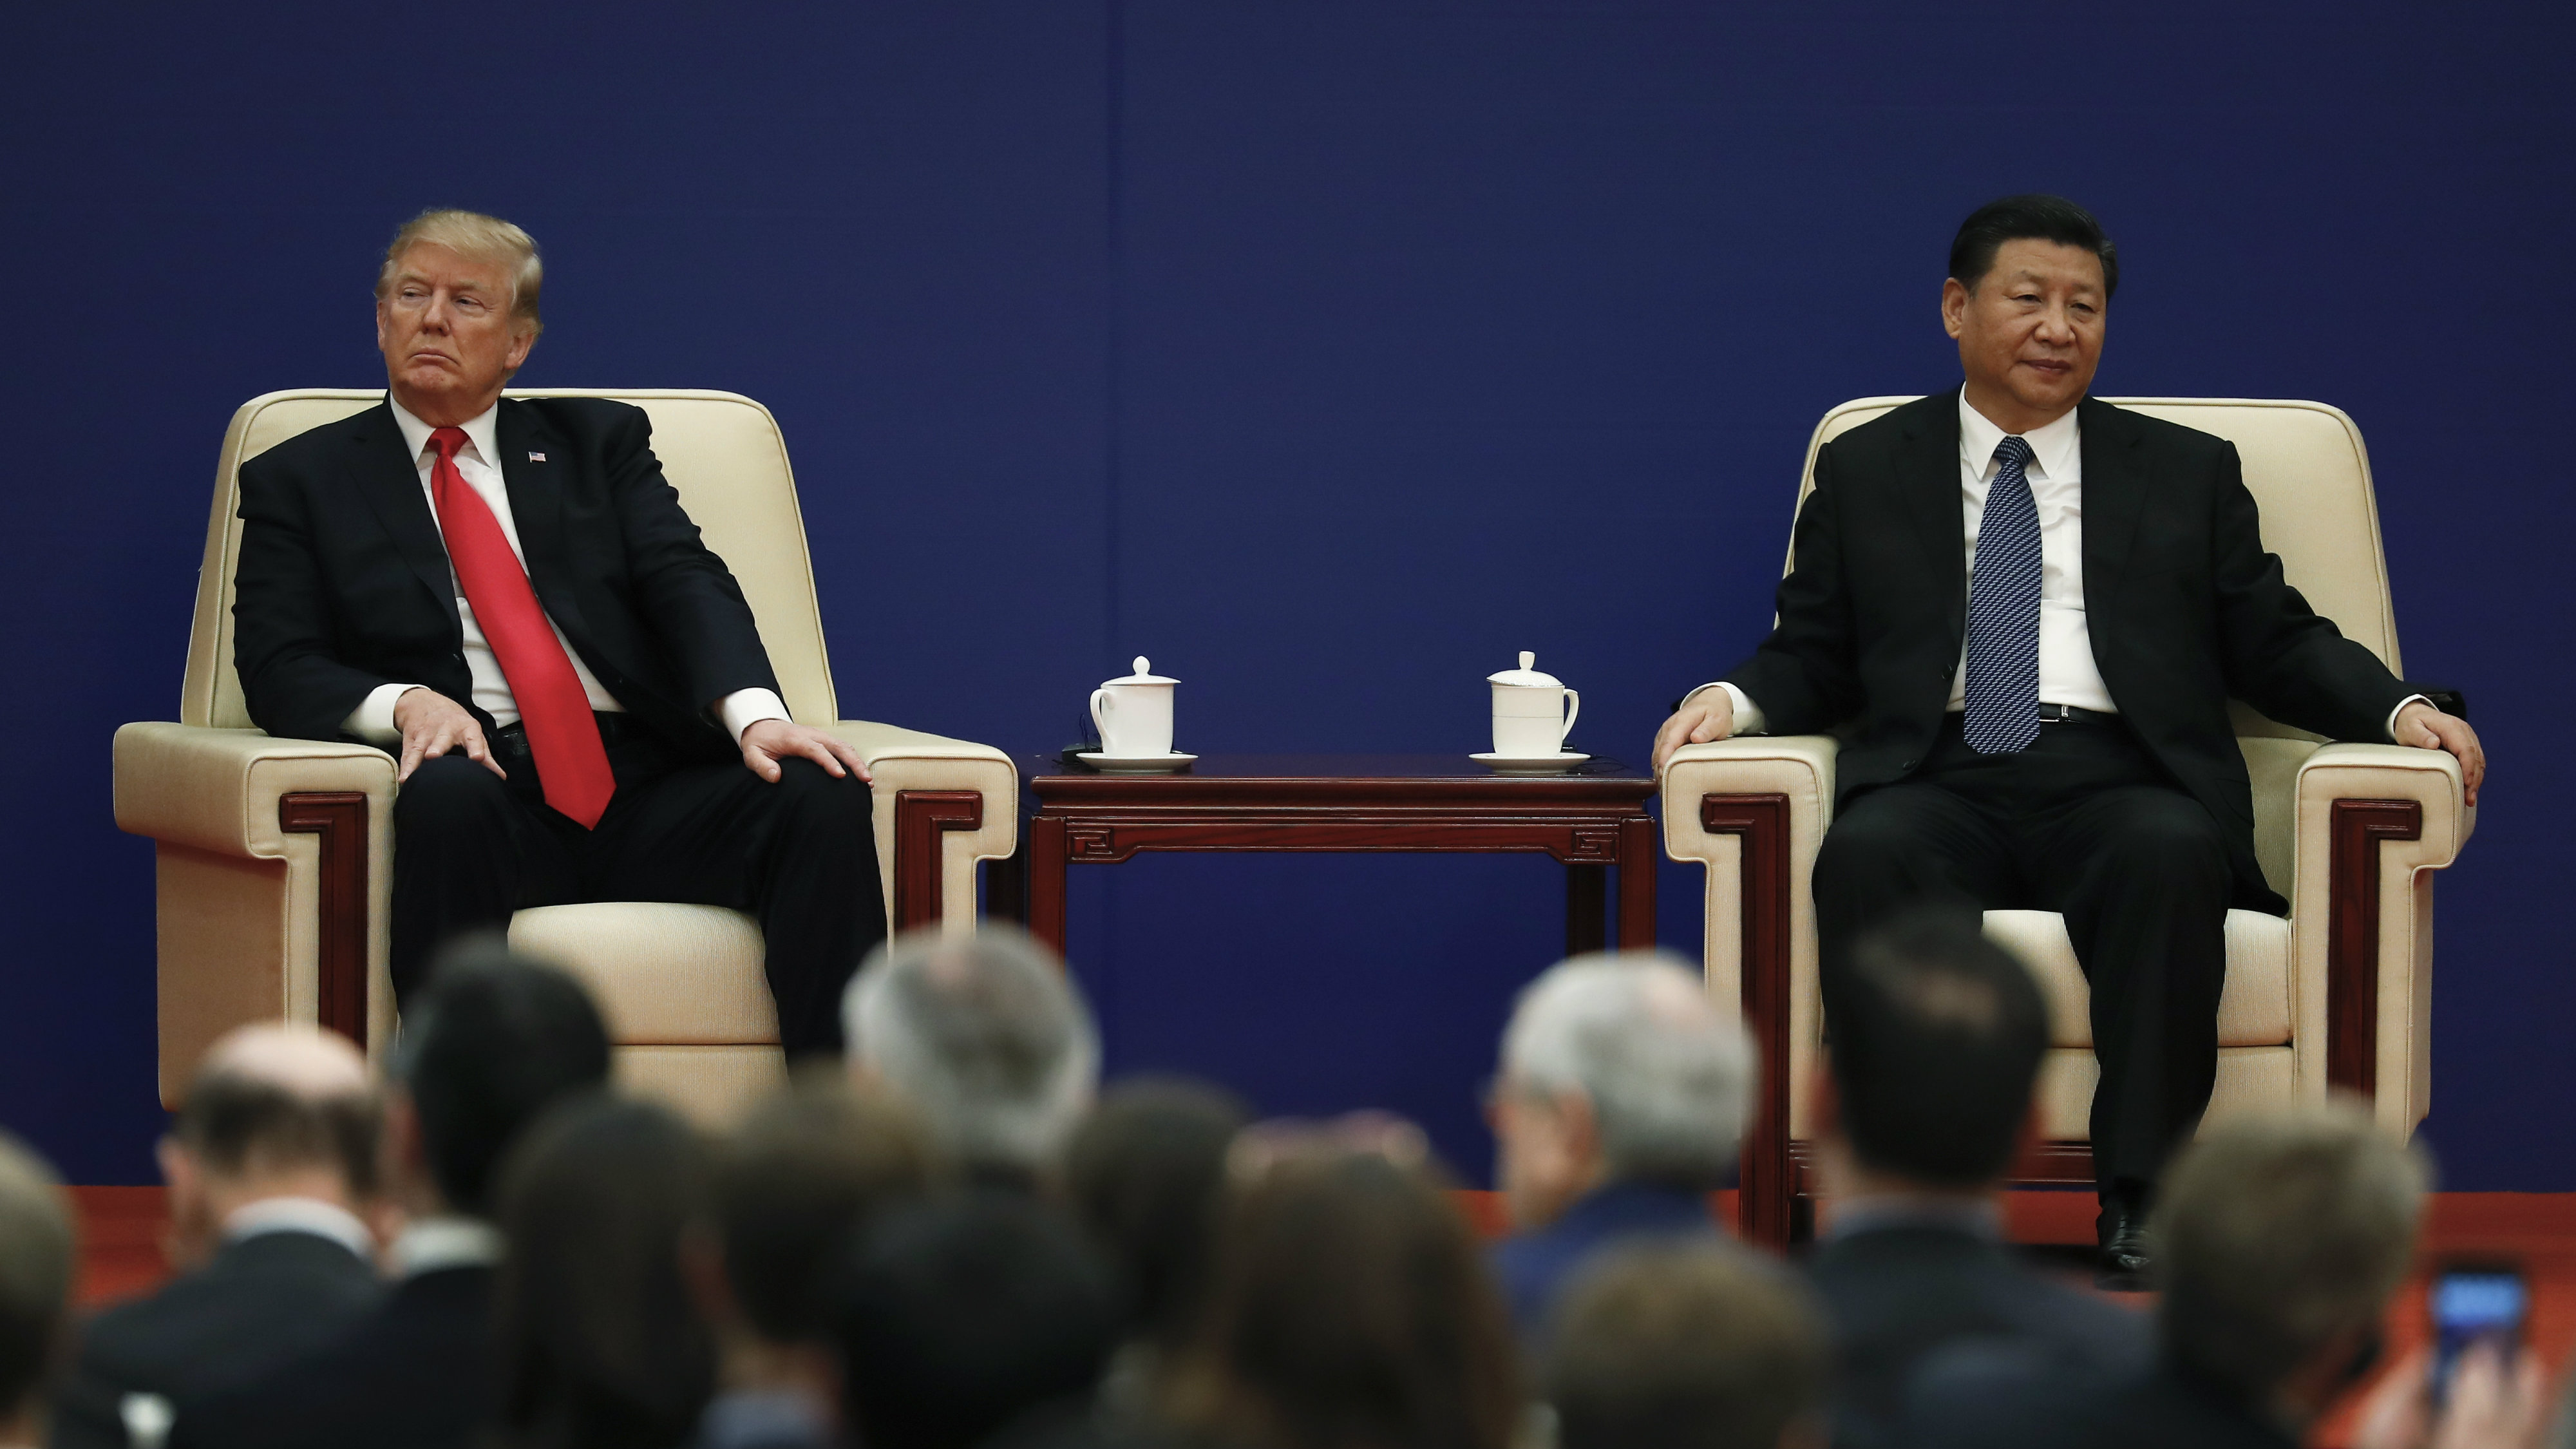 U.S. President Donald Trump, left, and Chinese President Xi Jinping attend a business event at the Great Hall of the People in Beijing, Thursday, Nov. 9, 2017. Trump is on a five-country trip through Asia traveling to Japan, South Korea, China, Vietnam and the Philippines.